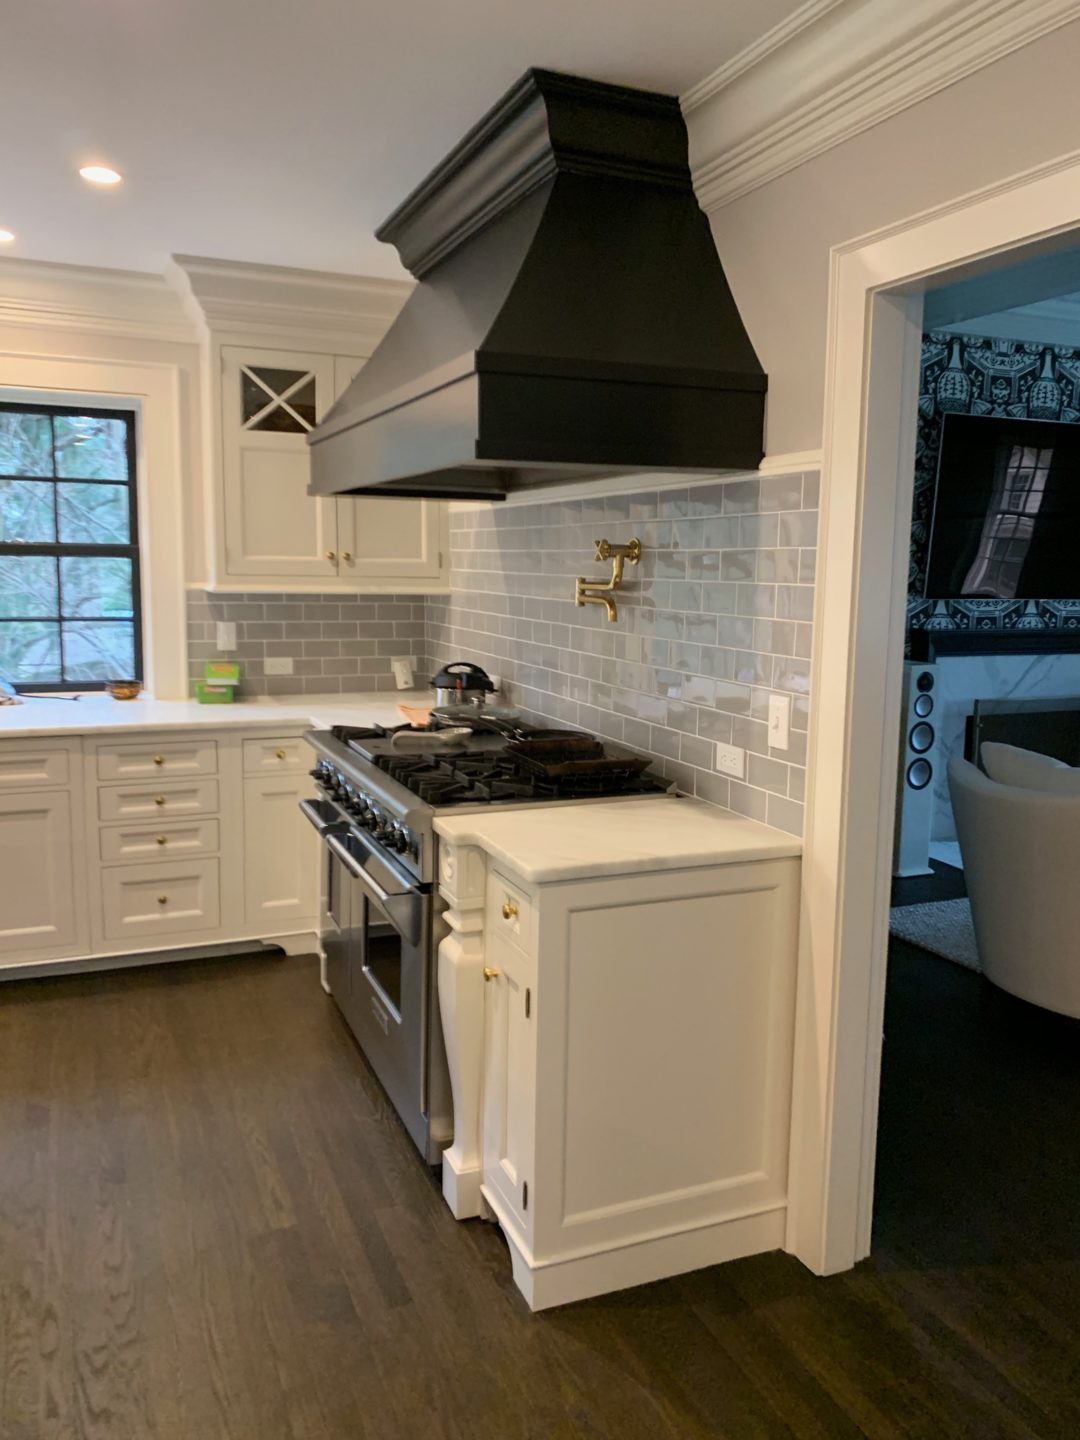 hood-and-backsplash-modification-before-by-liz-caan-interior-design-COUNTRY-Renovation-and-decoration-for-a-young-family